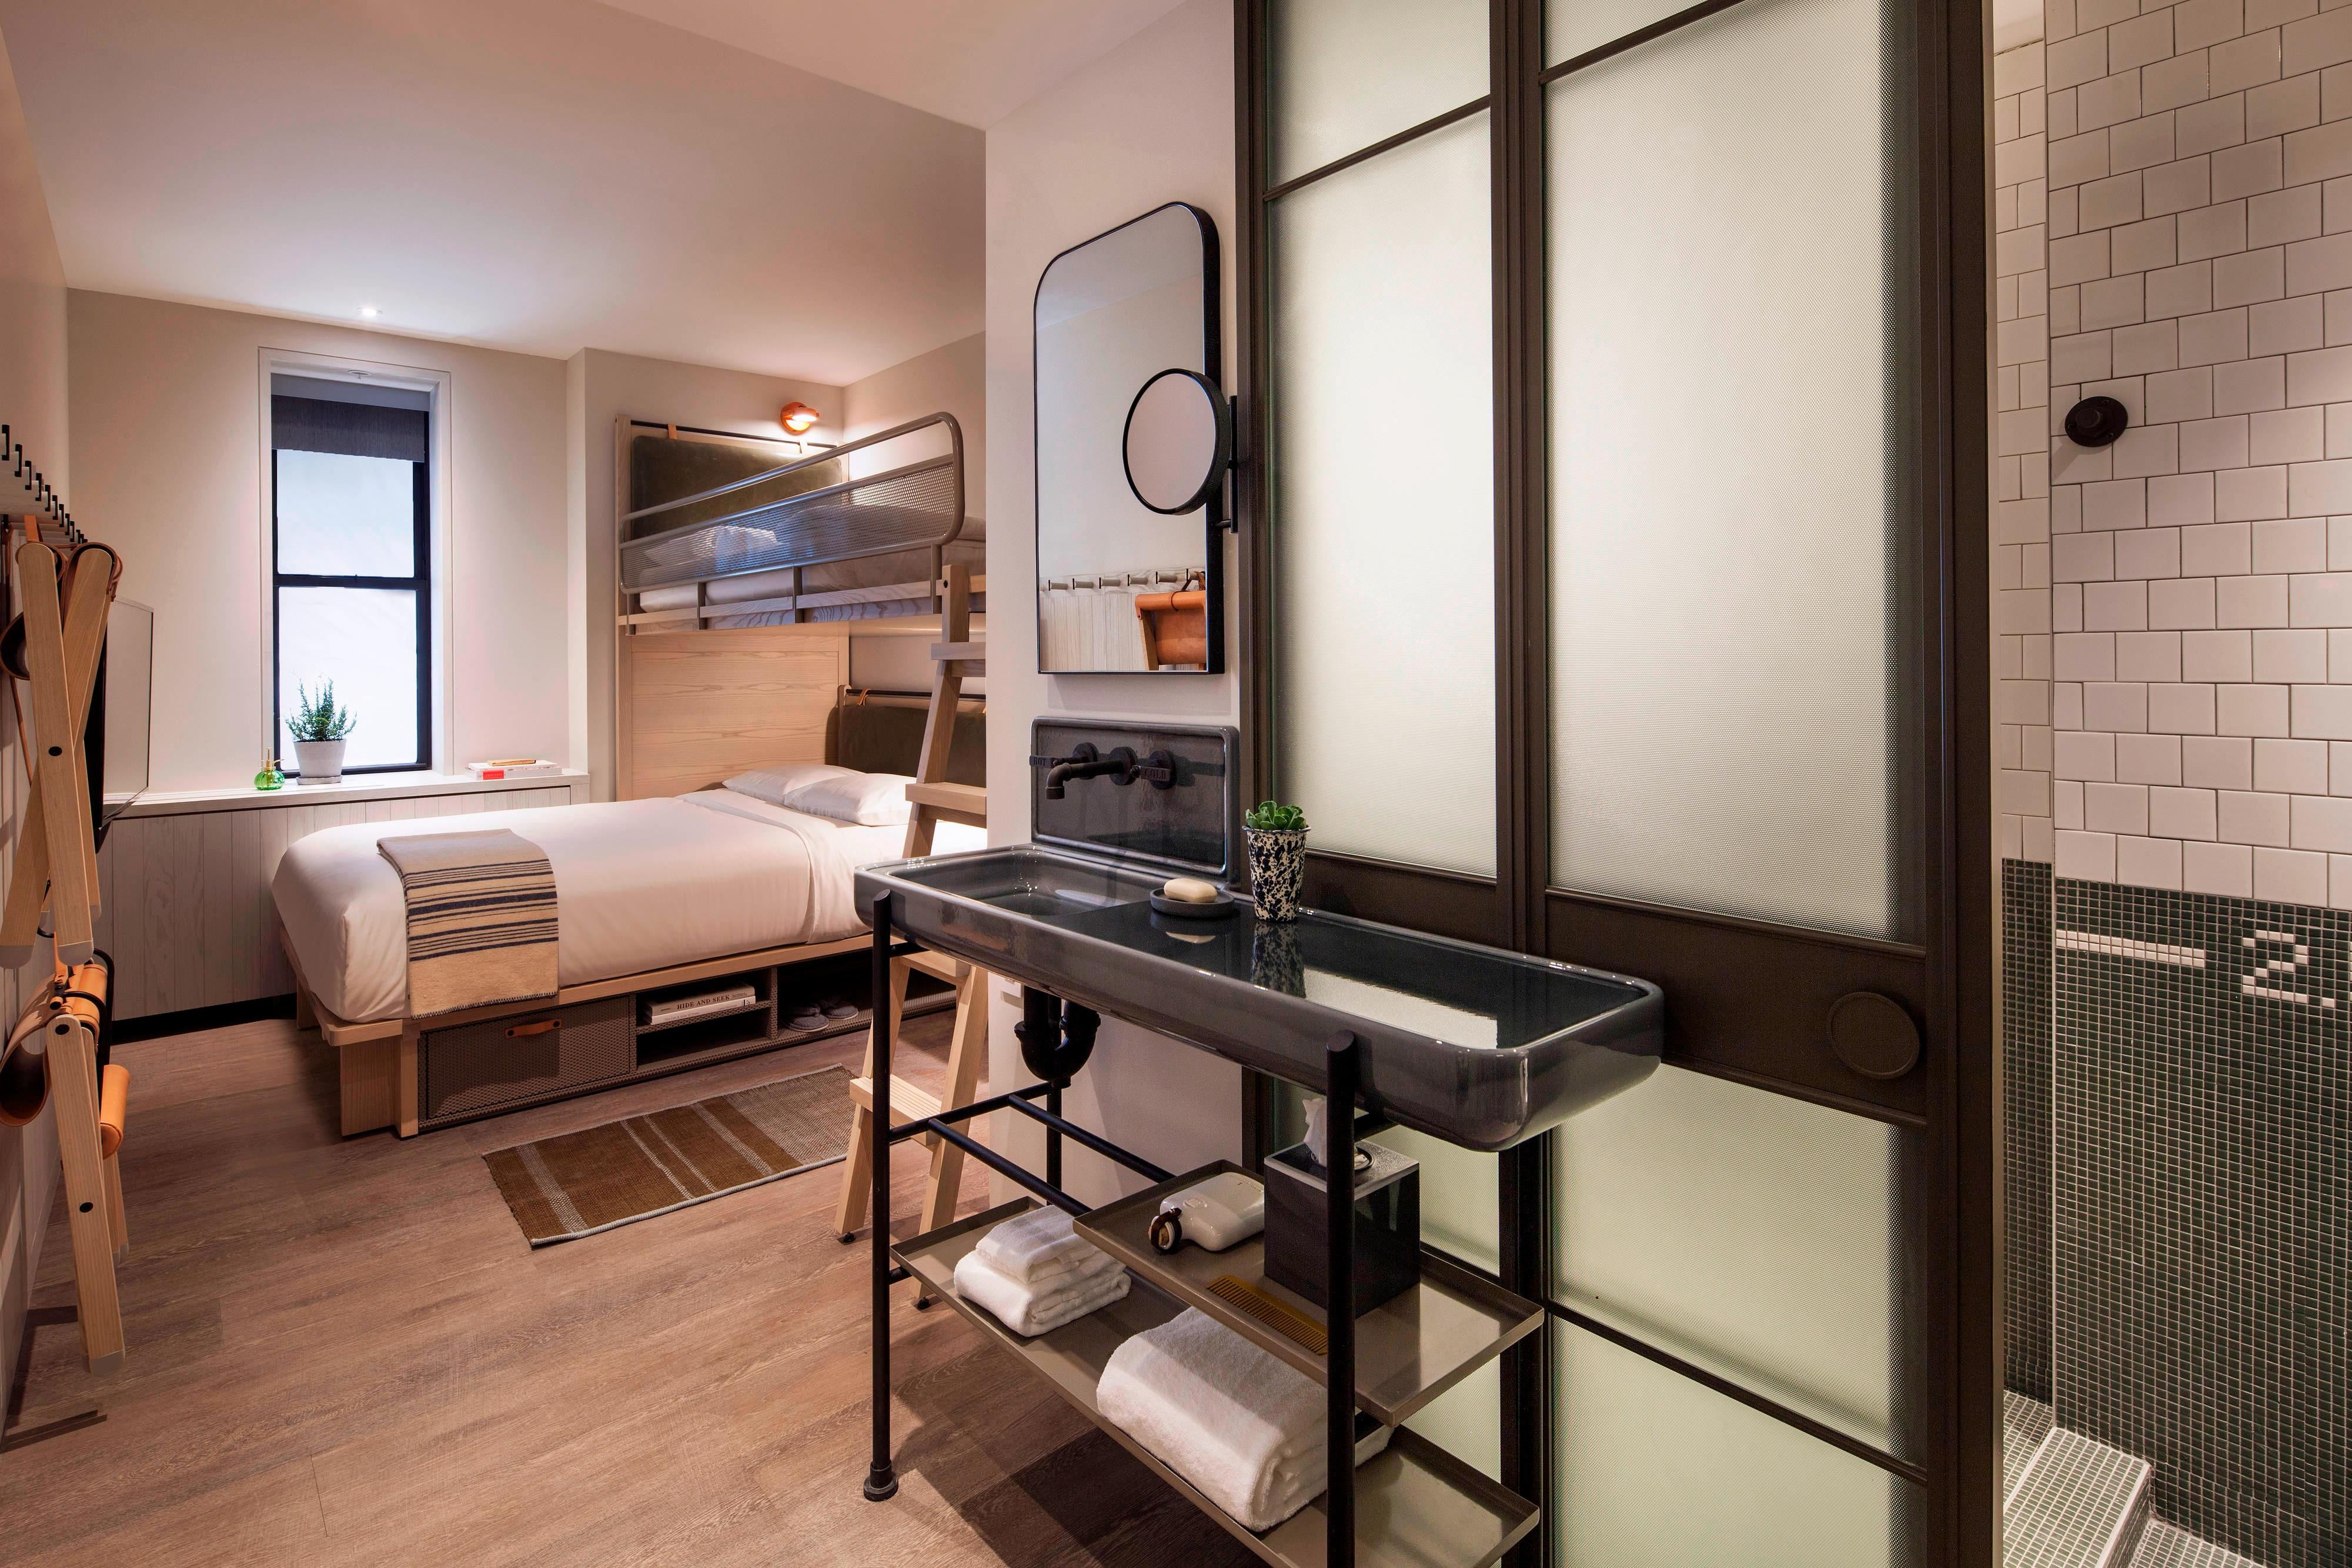 Image Result For Bedroom Layout  Twin Beds